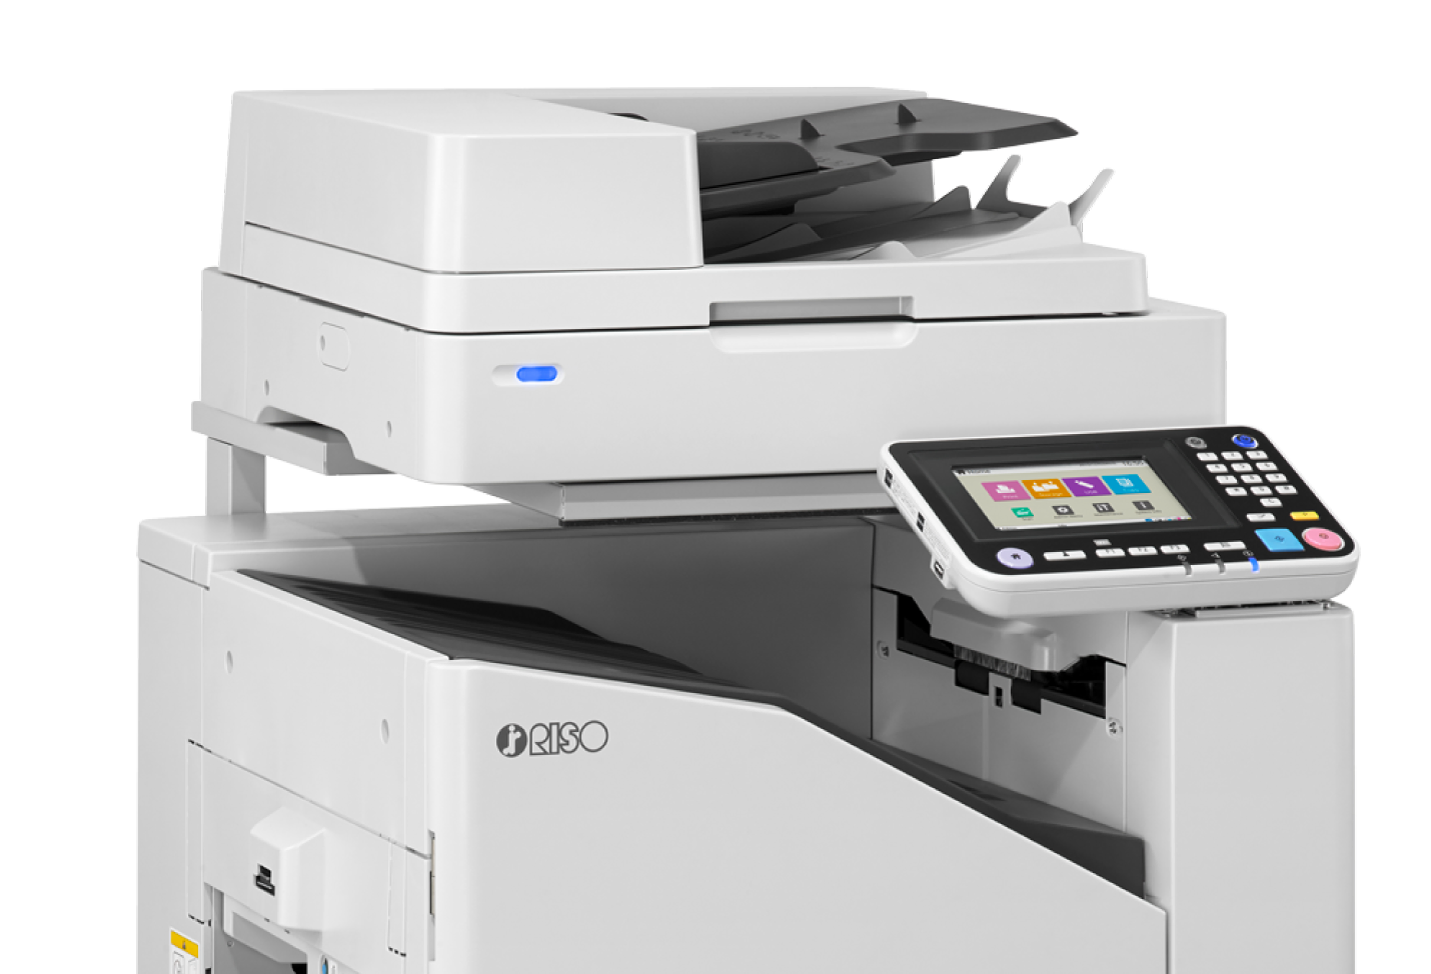 comcolor5230